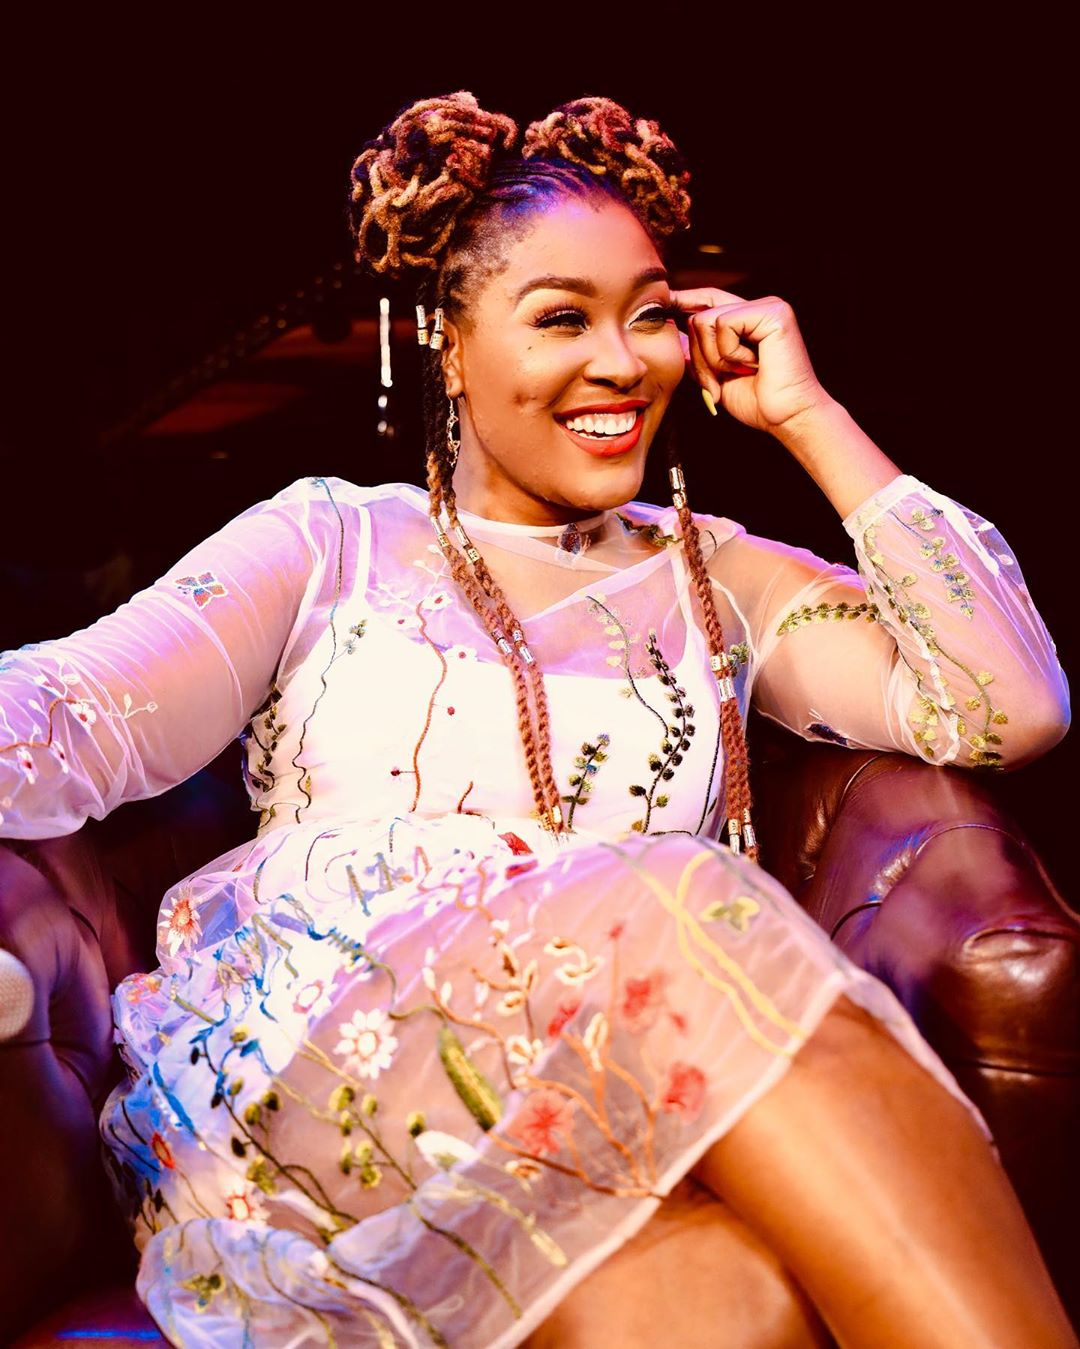 """I'll be successful one day"" – Lady Zamar"